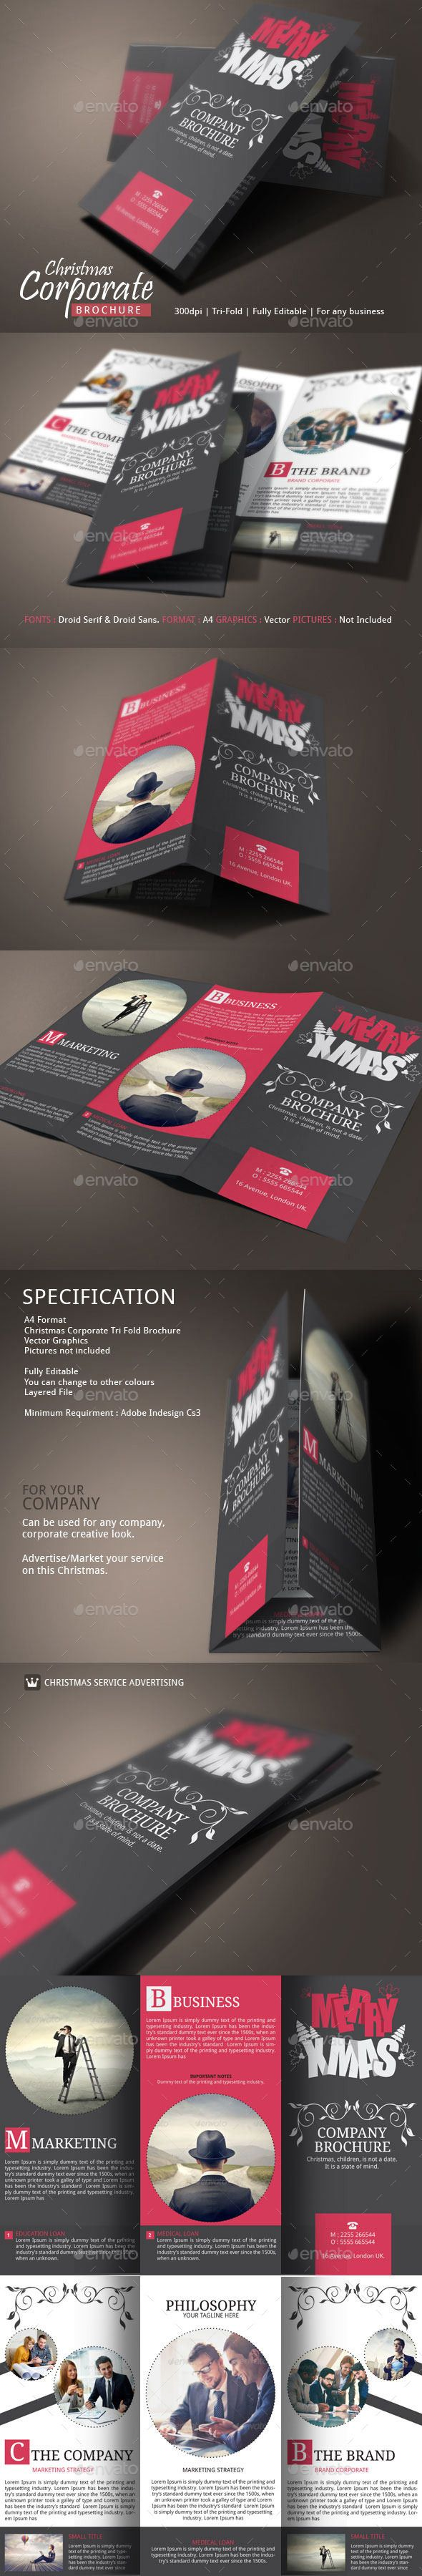 1000 images about brochure template vintage coffee buy christmas brochure examples by blogankids on graphicriver merry xmas to clients this corporate brochure template is for you to advertise your services